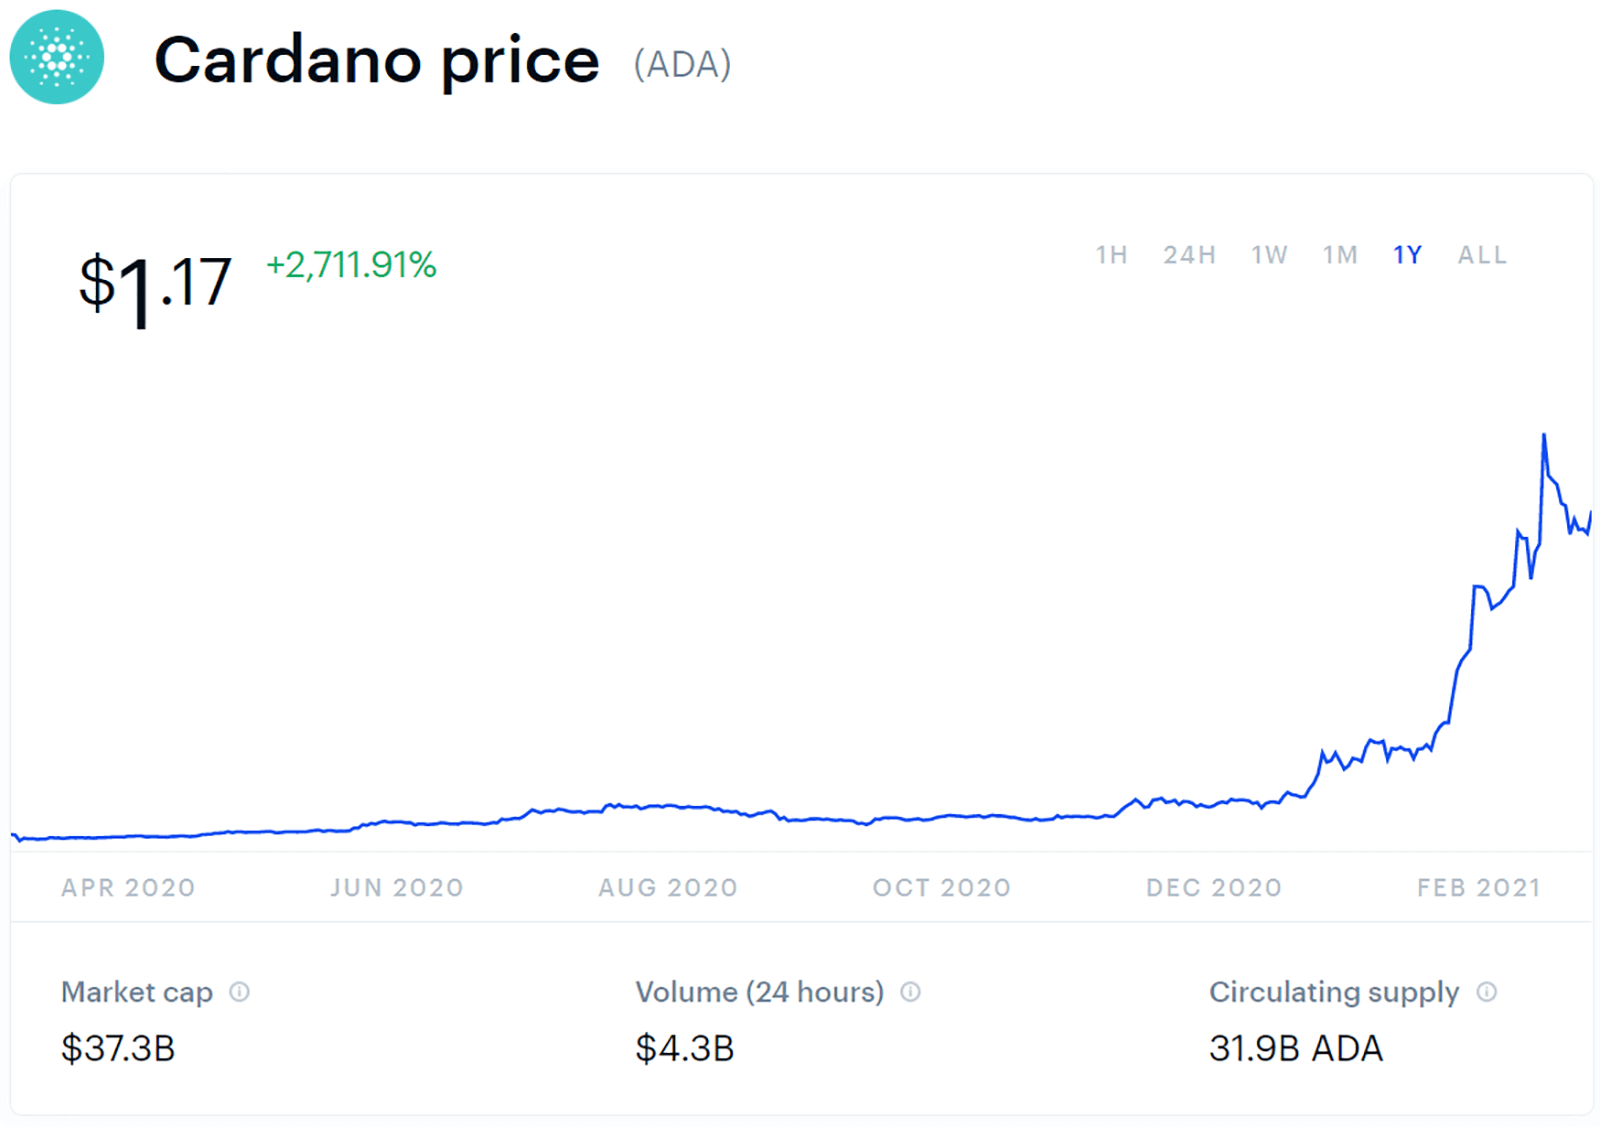 1 year cardano price chart as of march 10 2021